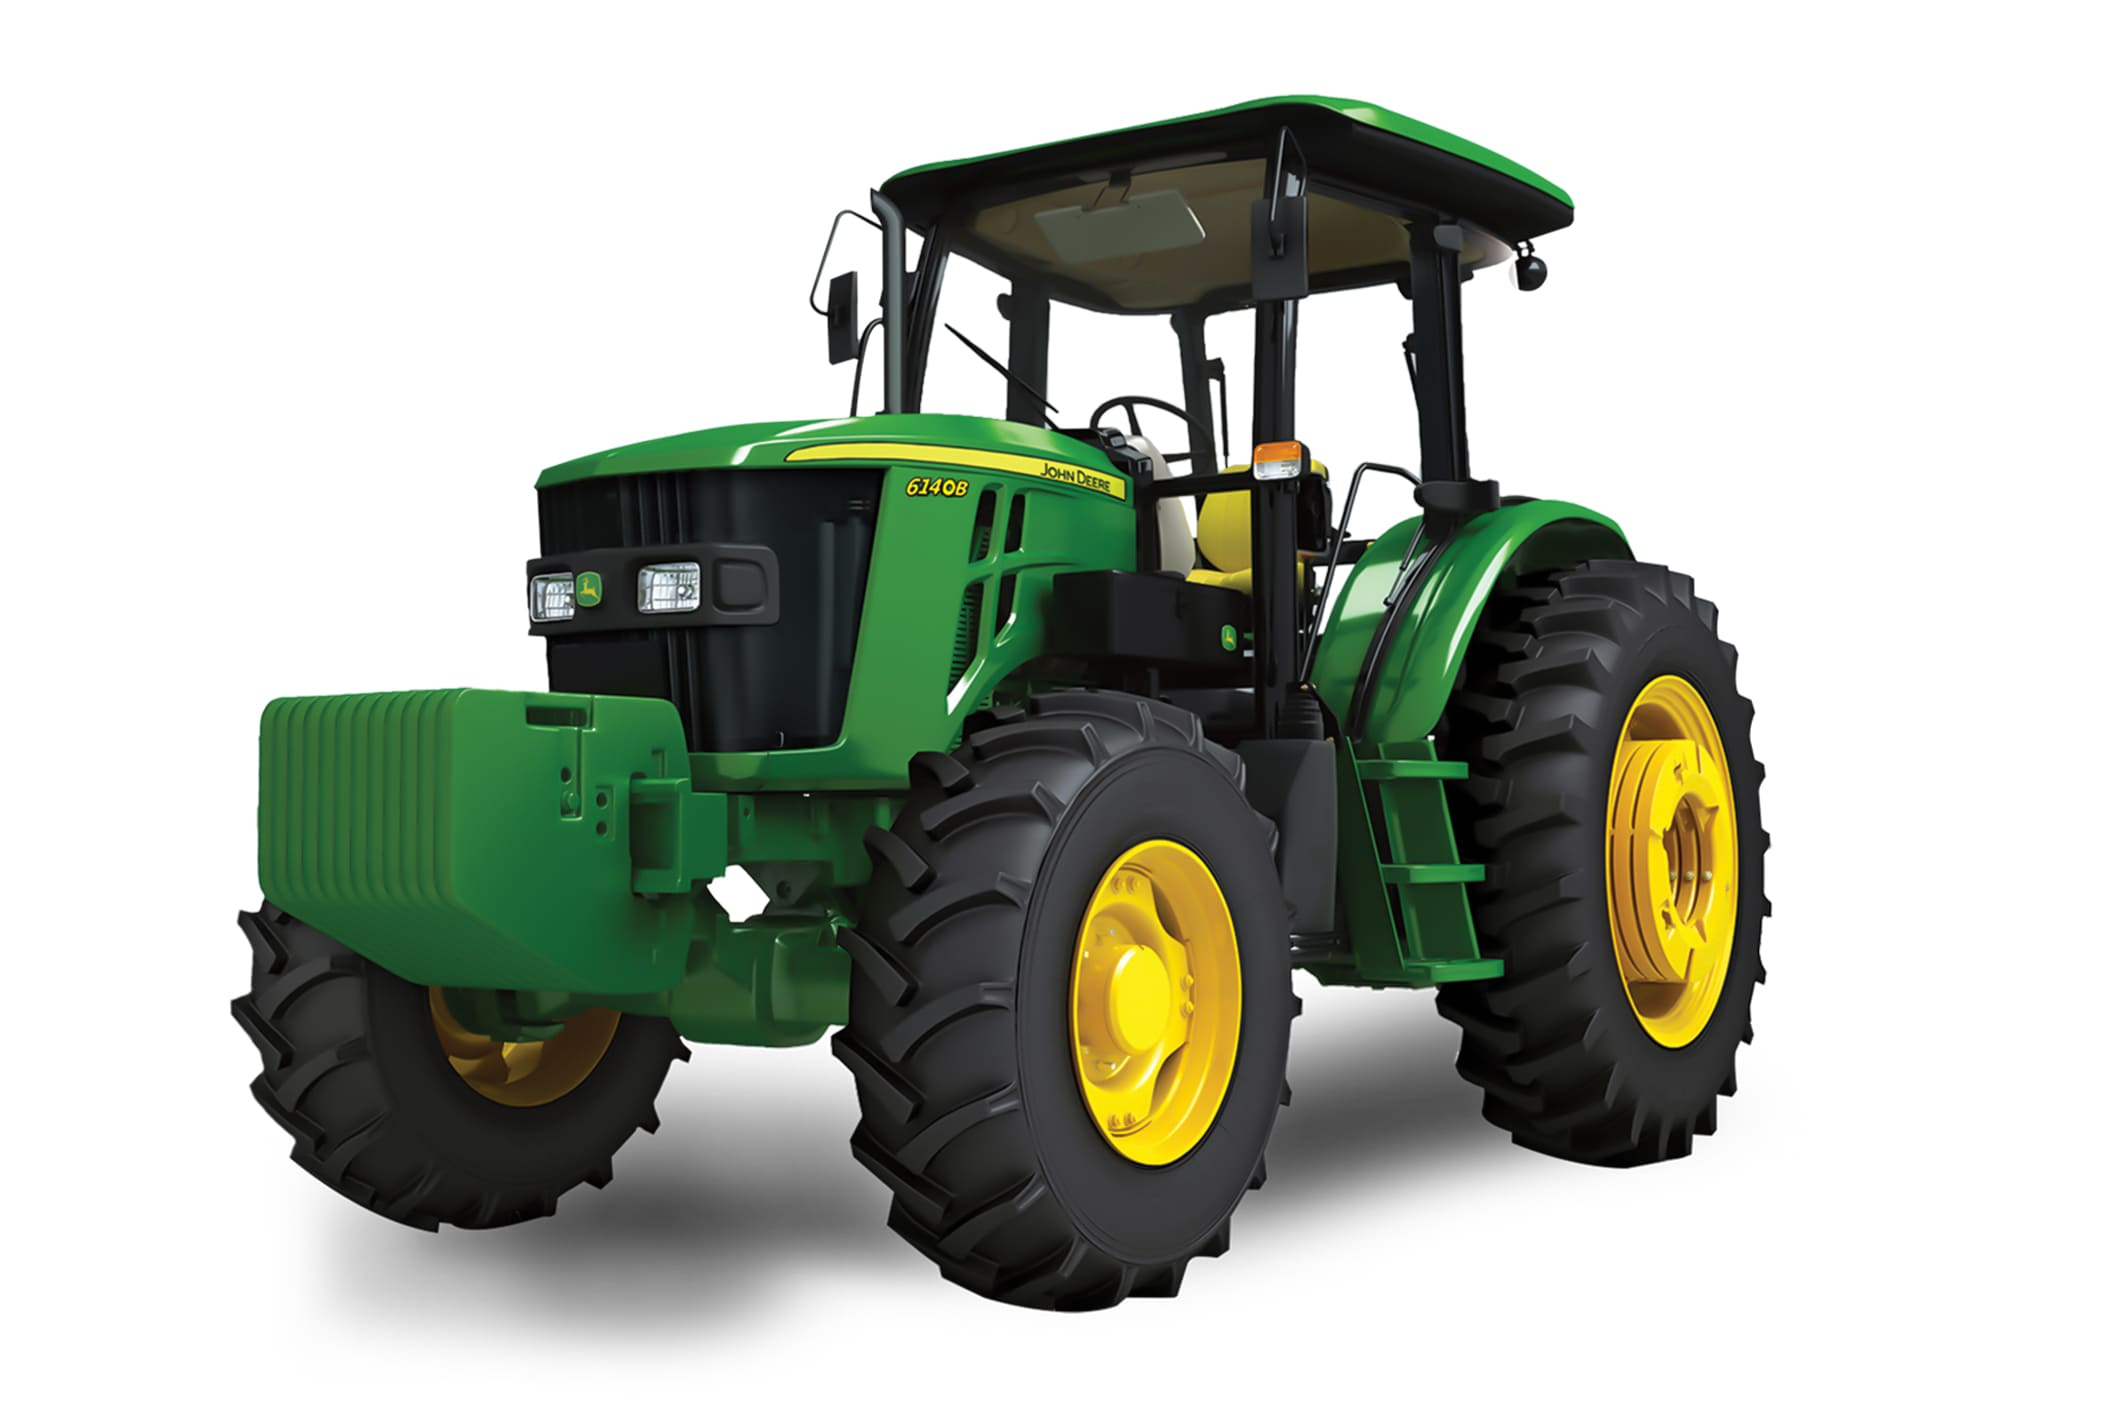 6B Series tractor image